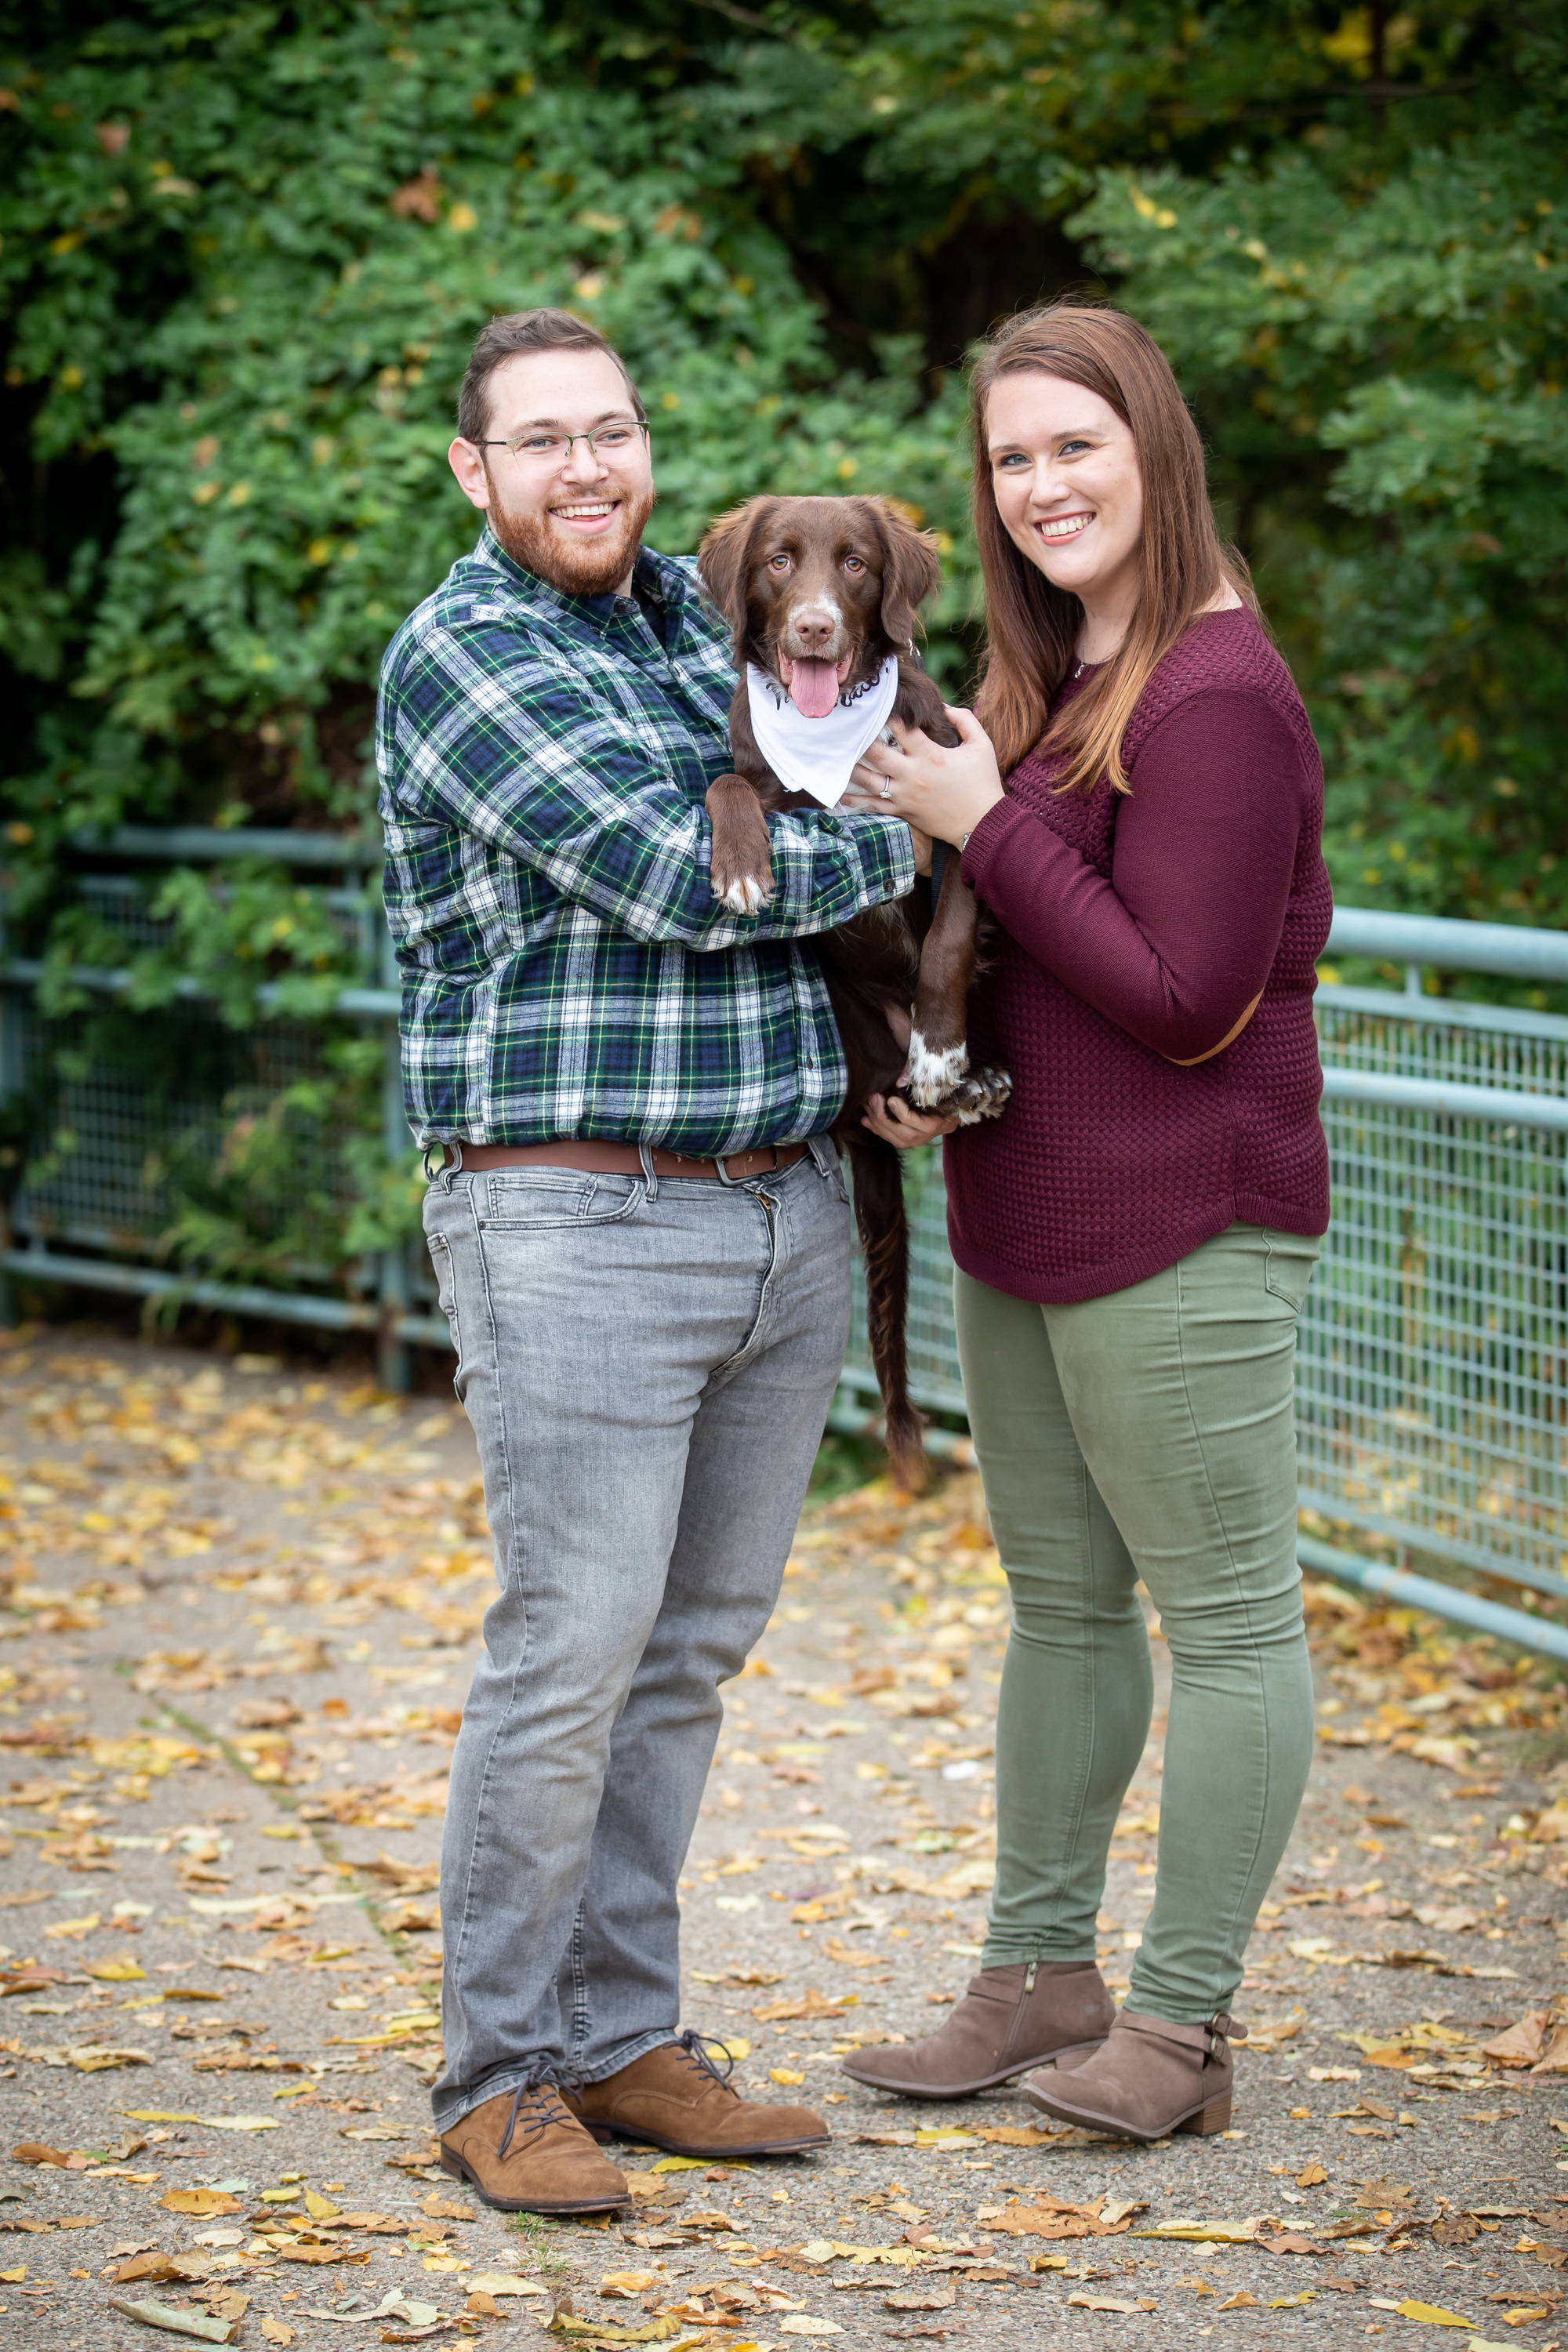 Henne Engagement Ring Couple Max and Andrea at the Park with Their Dog